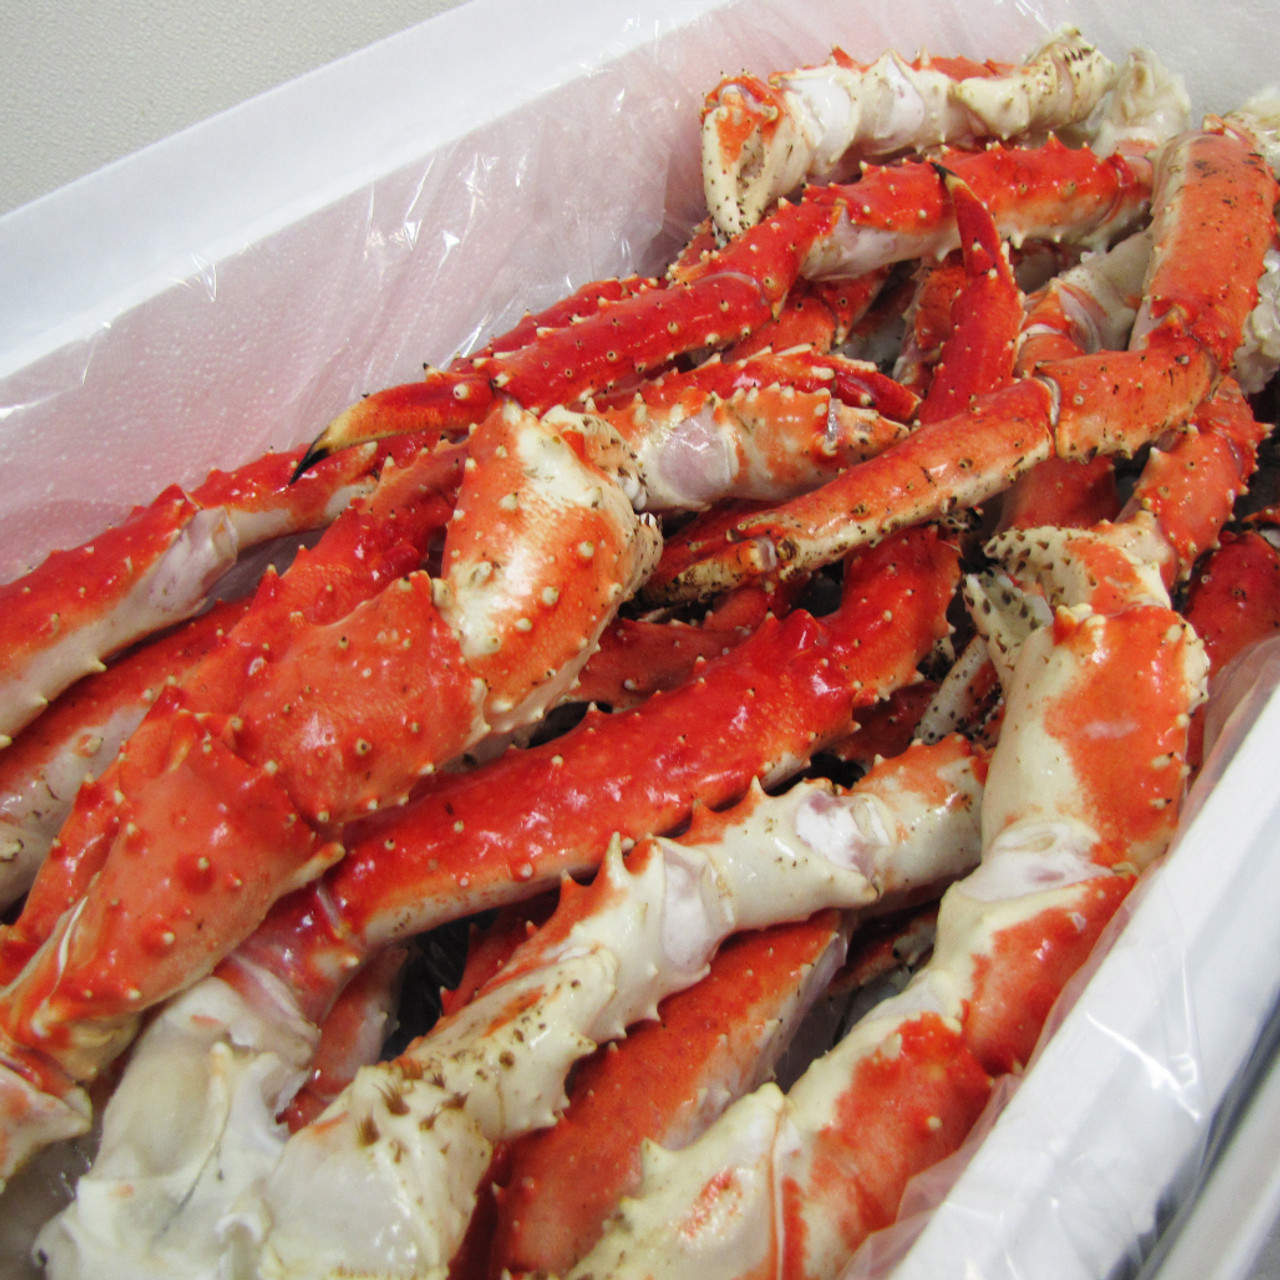 20 Lb Case Alaska Red King Crab Legs Claws Fishex Seafoods